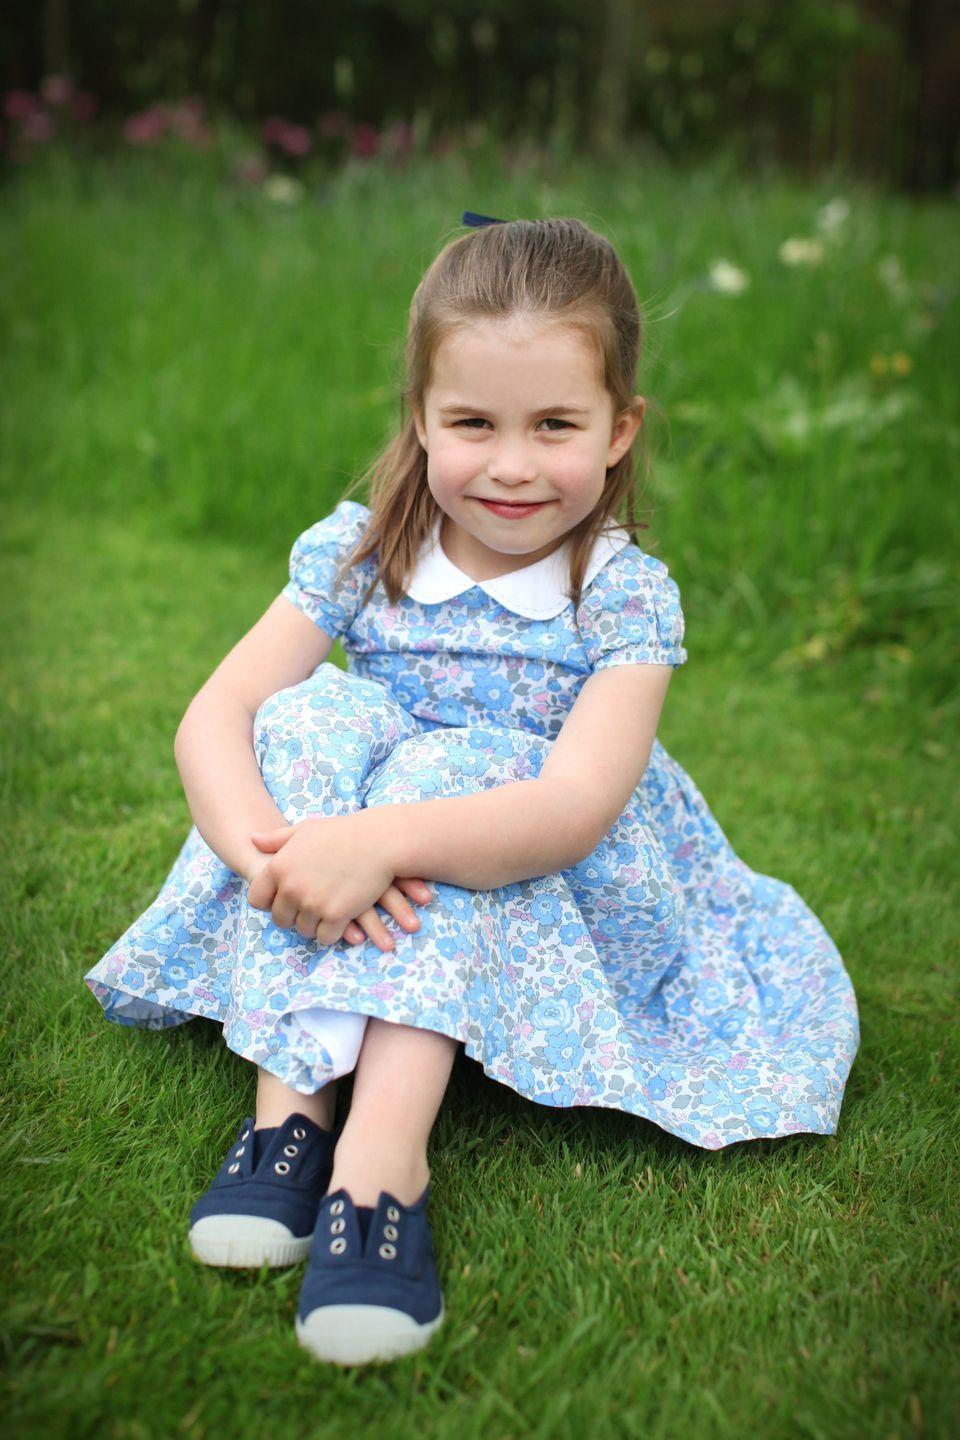 """<p>In celebration of Princess Charlotte's fourth birthday on May 2, 2019, the Duke and Duchess of Cambridge <a href=""""https://www.instagram.com/p/Bw72FBtlXmG/"""" rel=""""nofollow noopener"""" target=""""_blank"""" data-ylk=""""slk:shared a portrait"""" class=""""link rapid-noclick-resp"""">shared a portrait</a> of the young royal the Duchess took herself.</p>"""